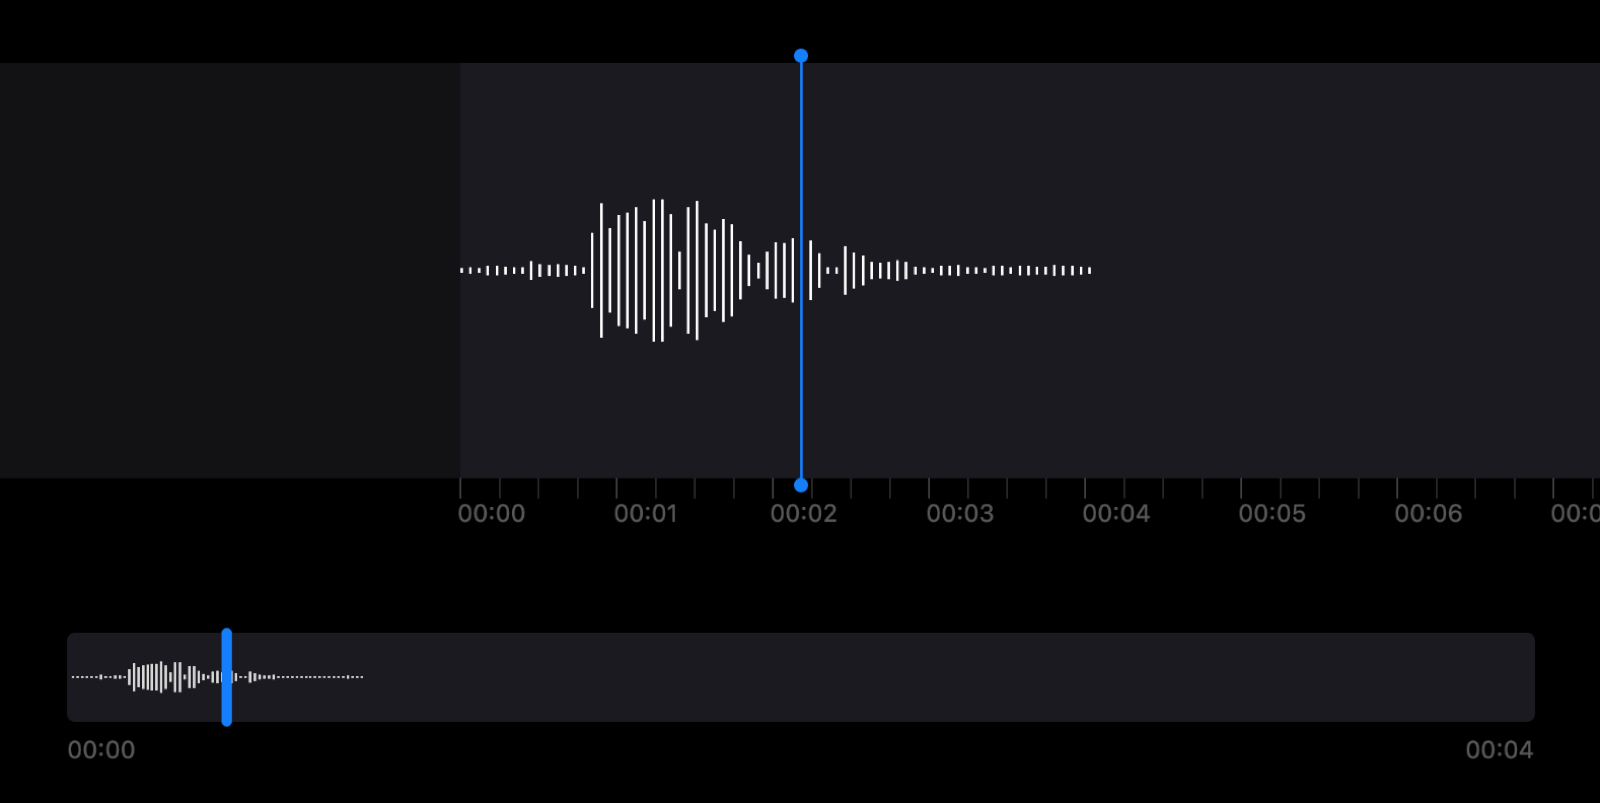 Cómo crear y utilizar notas de voz en Apple Watch